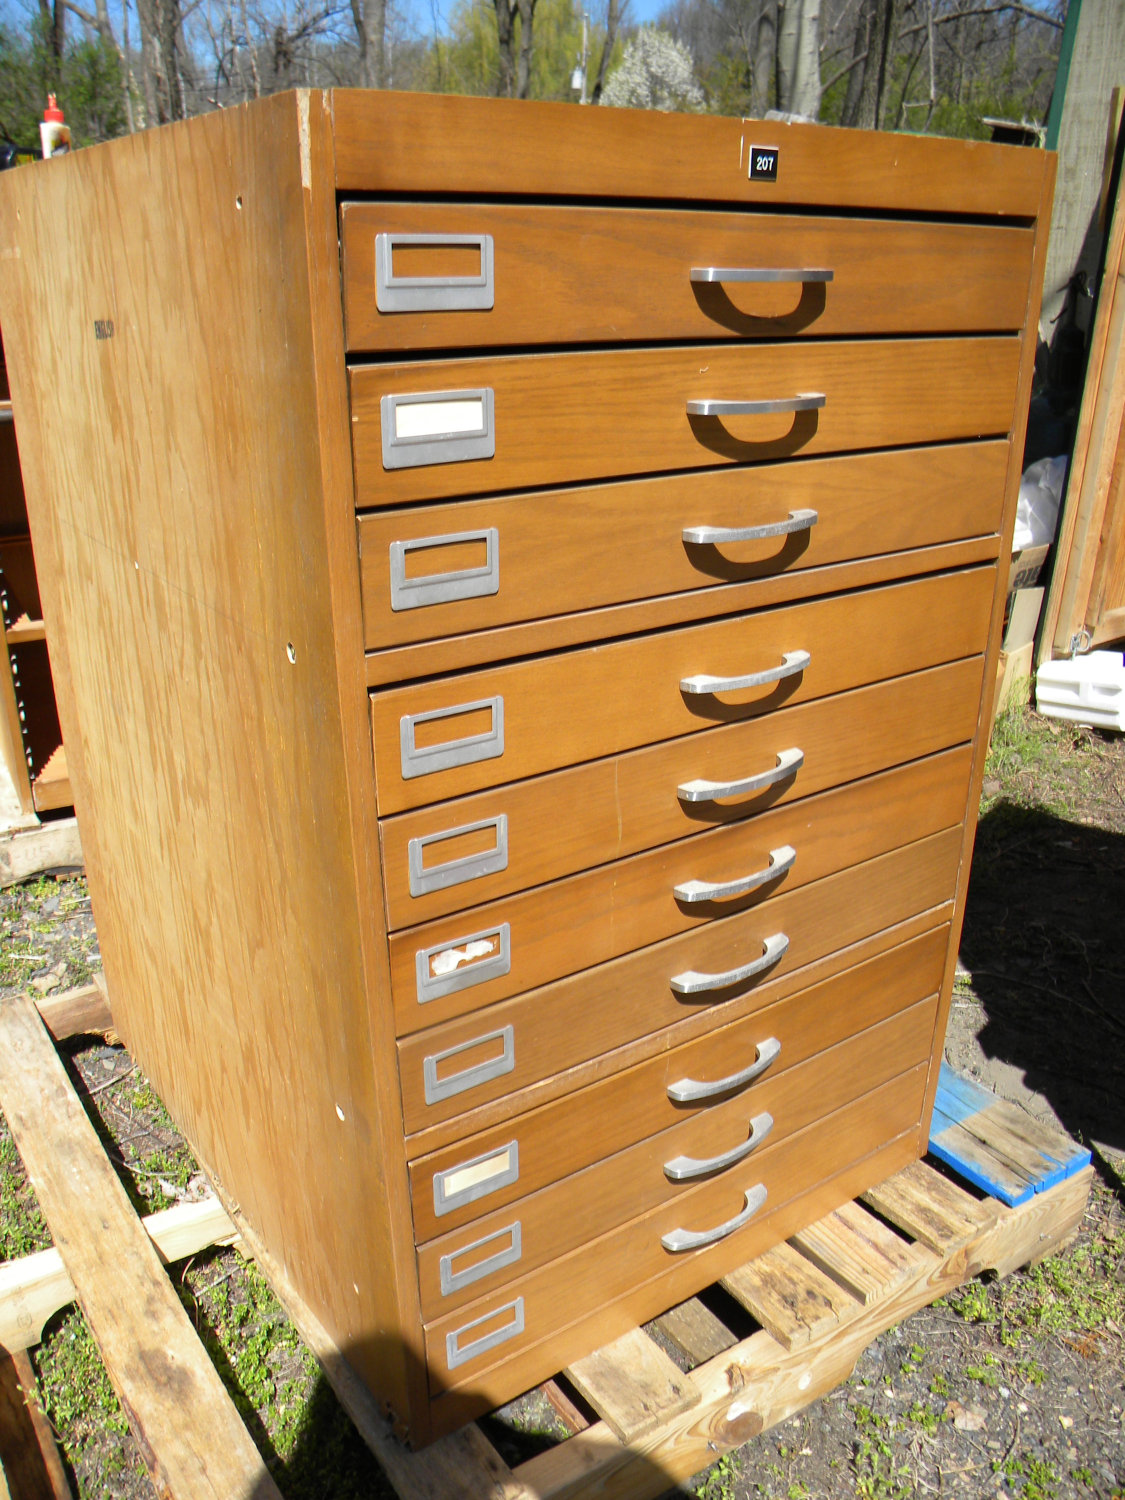 Beau Vintage 70s 10 Drawer MAP BLUEPRINT COLLECTOR Wood Storage Cabinet